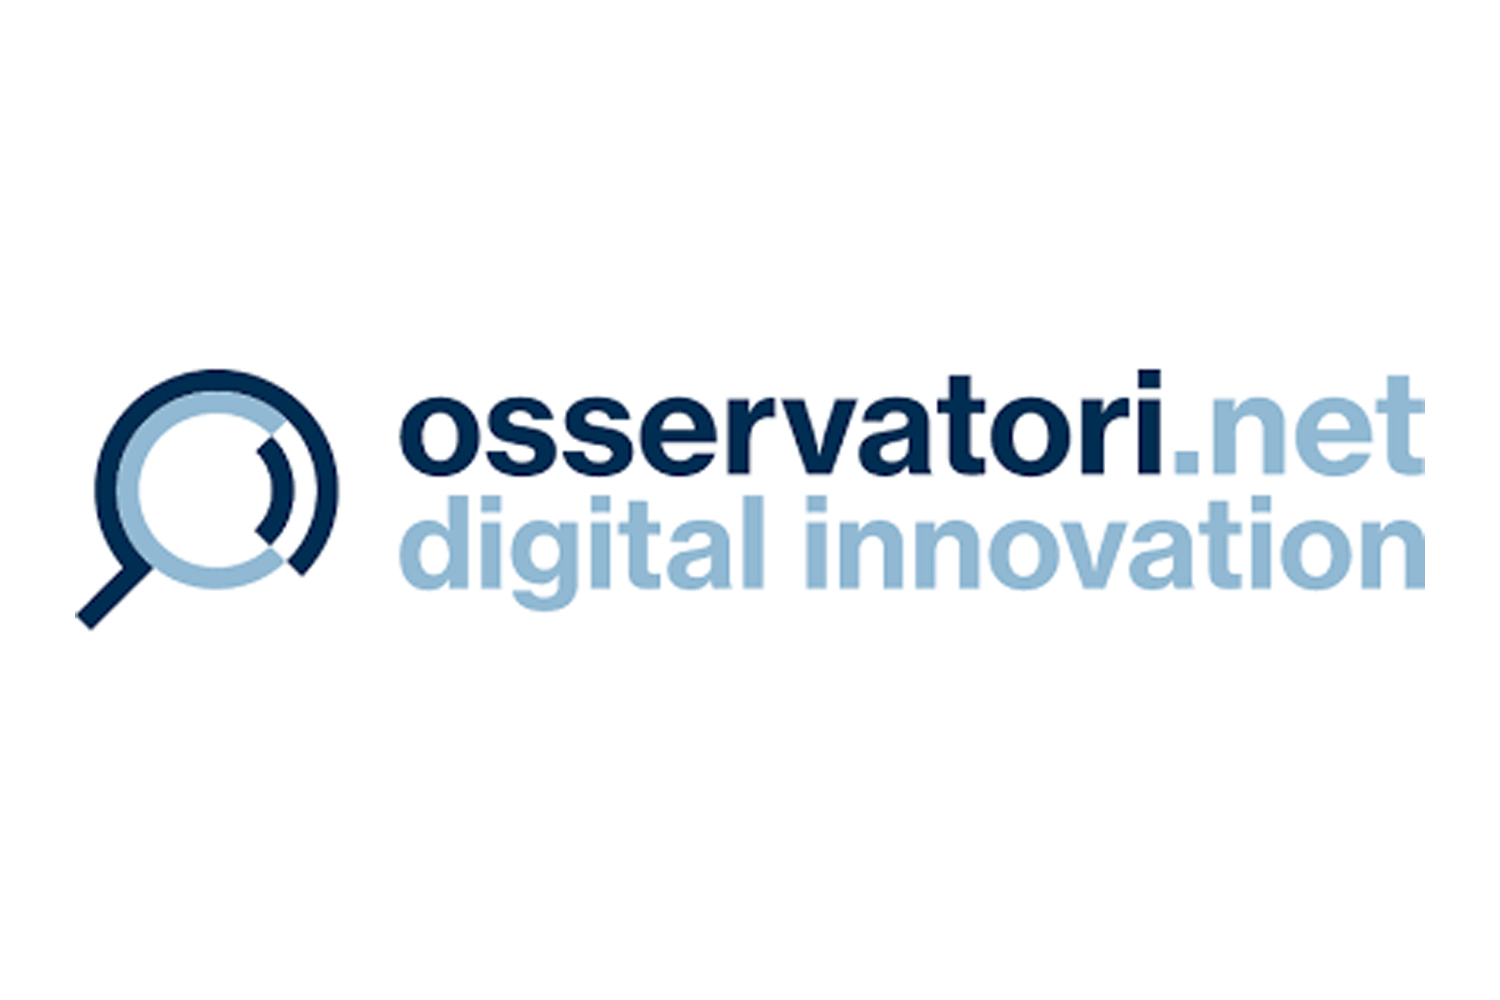 Osservatori digital innovation - logo